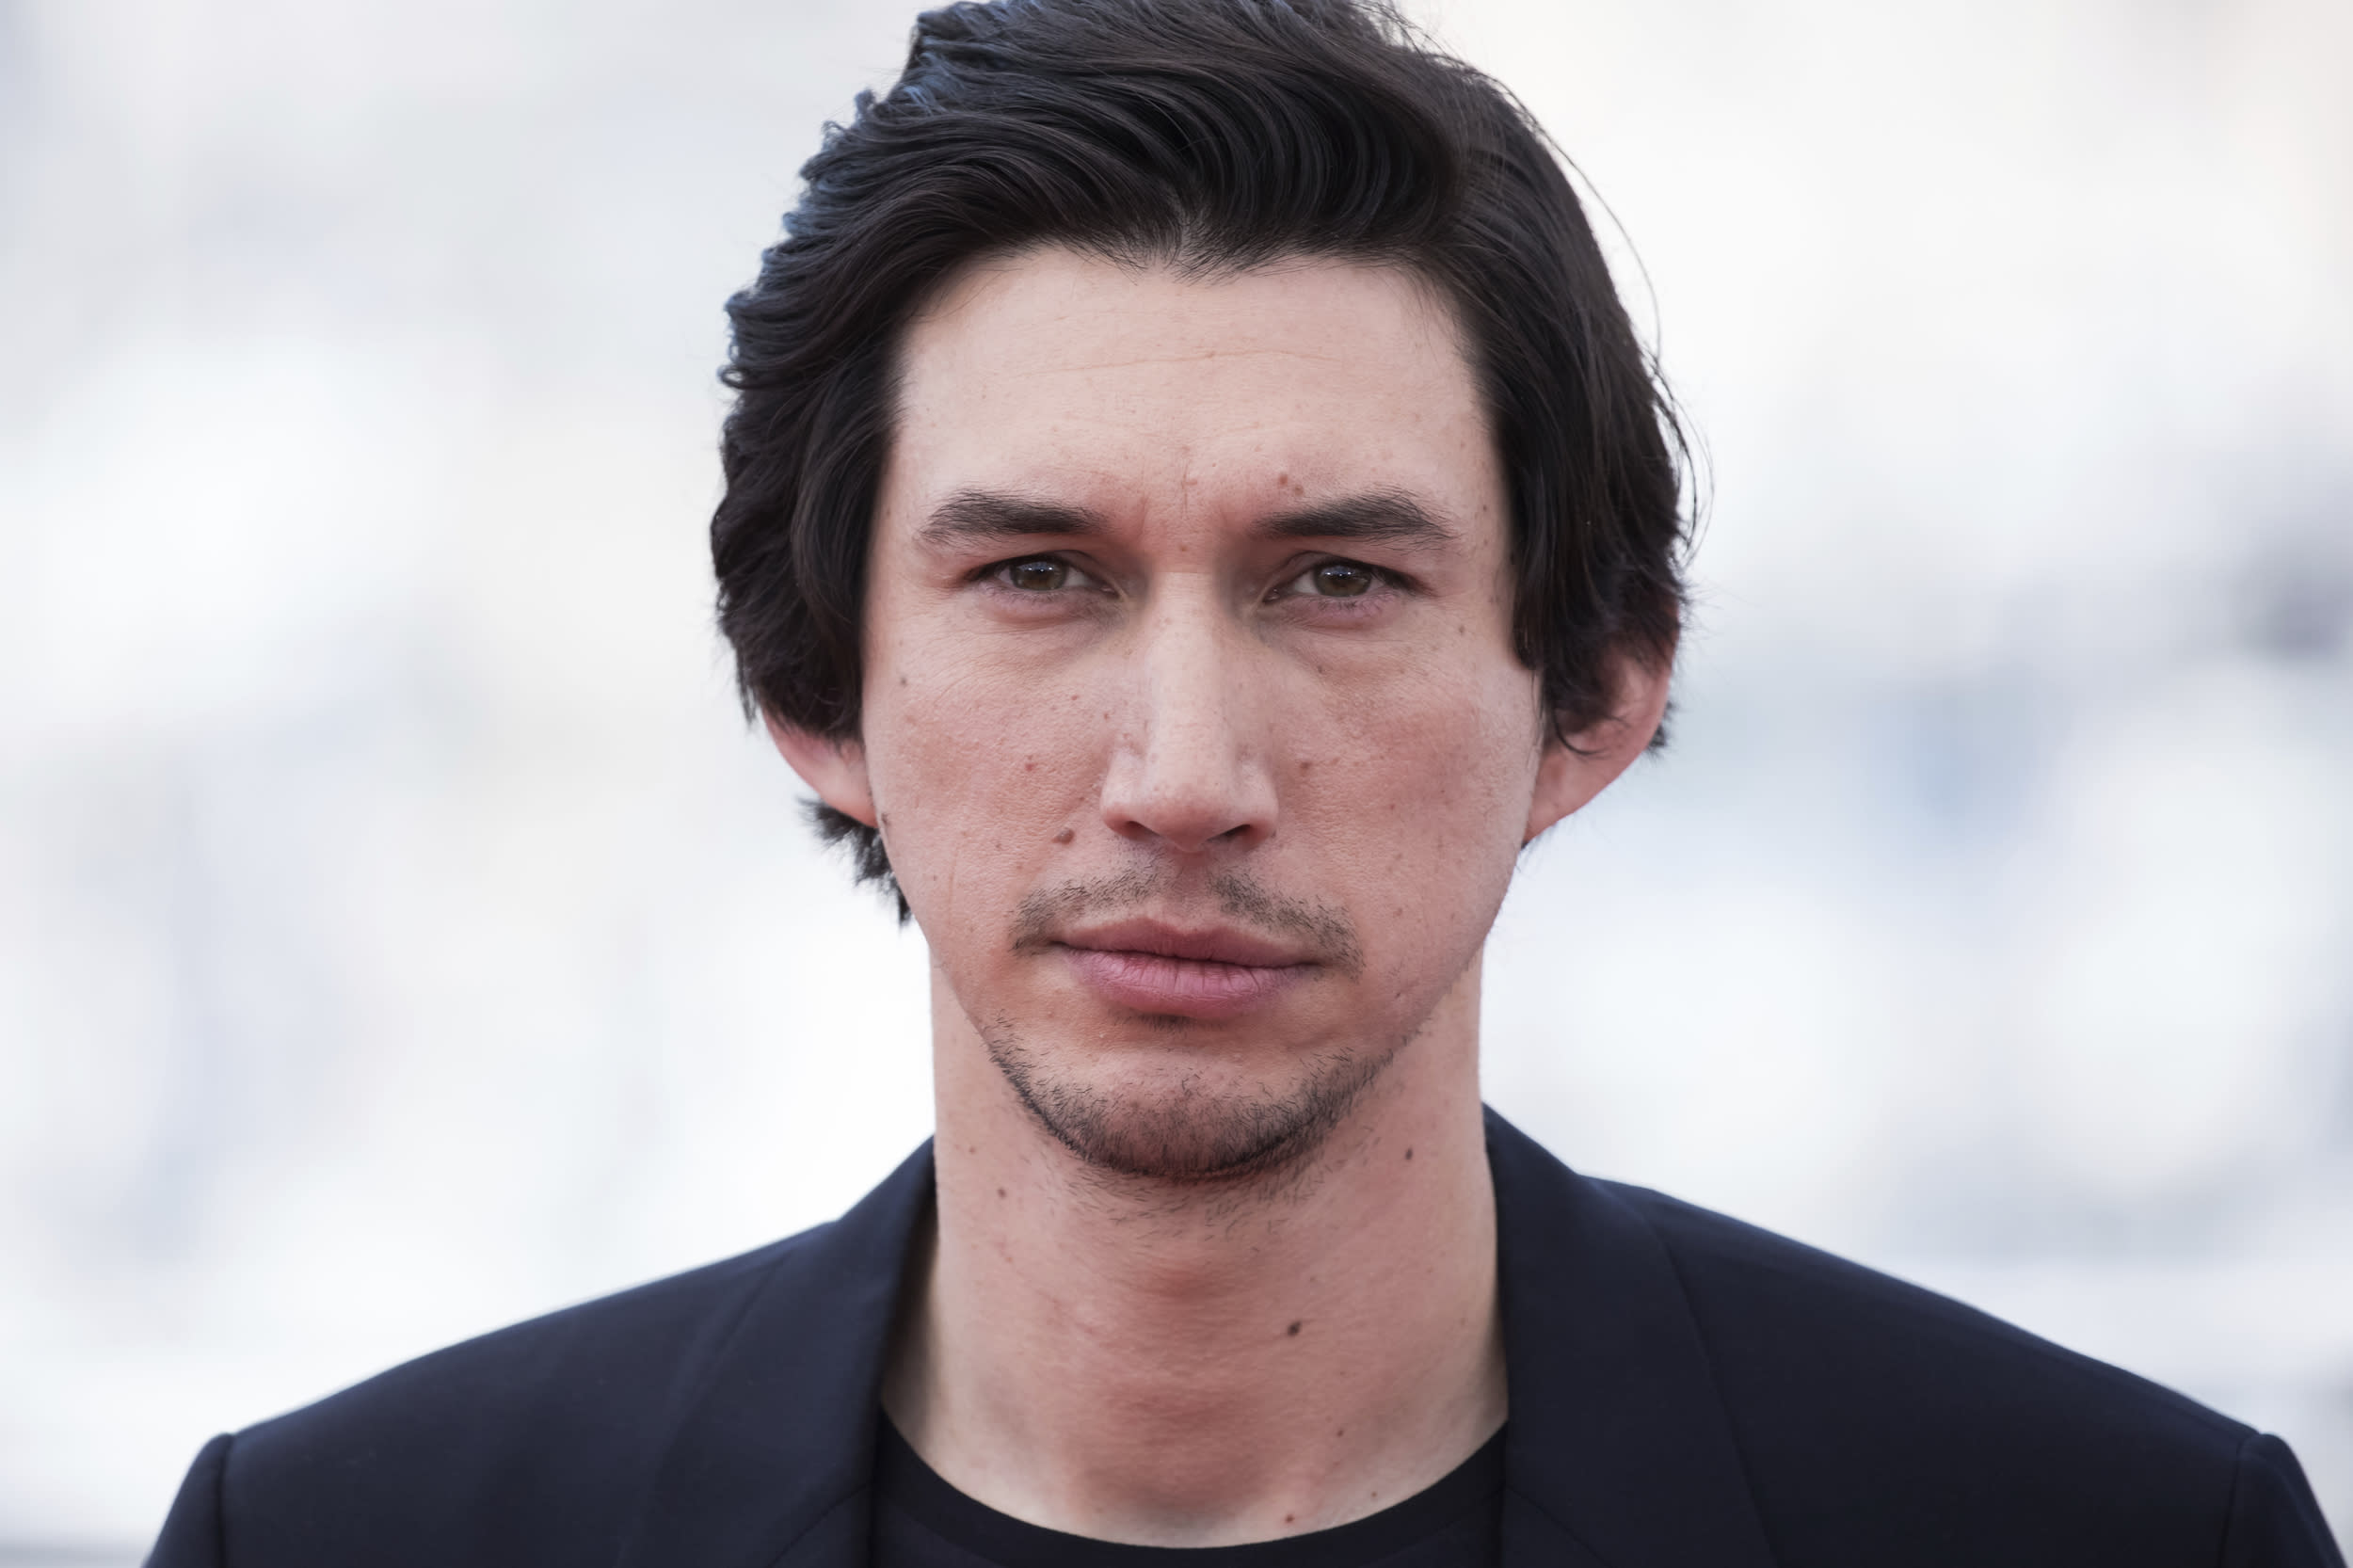 """Well before he would become """"Star Wars"""" villain Kylo Ren, Adam Driver served in the Marine Corps. He joined not long after Sept. 11, 2001. He has said that post-service, while studying drama at Juilliard, he had difficulty relating to other students and adjusting to a life outside the Marines. He now runs the non-profit Arts in the Armed Forces."""